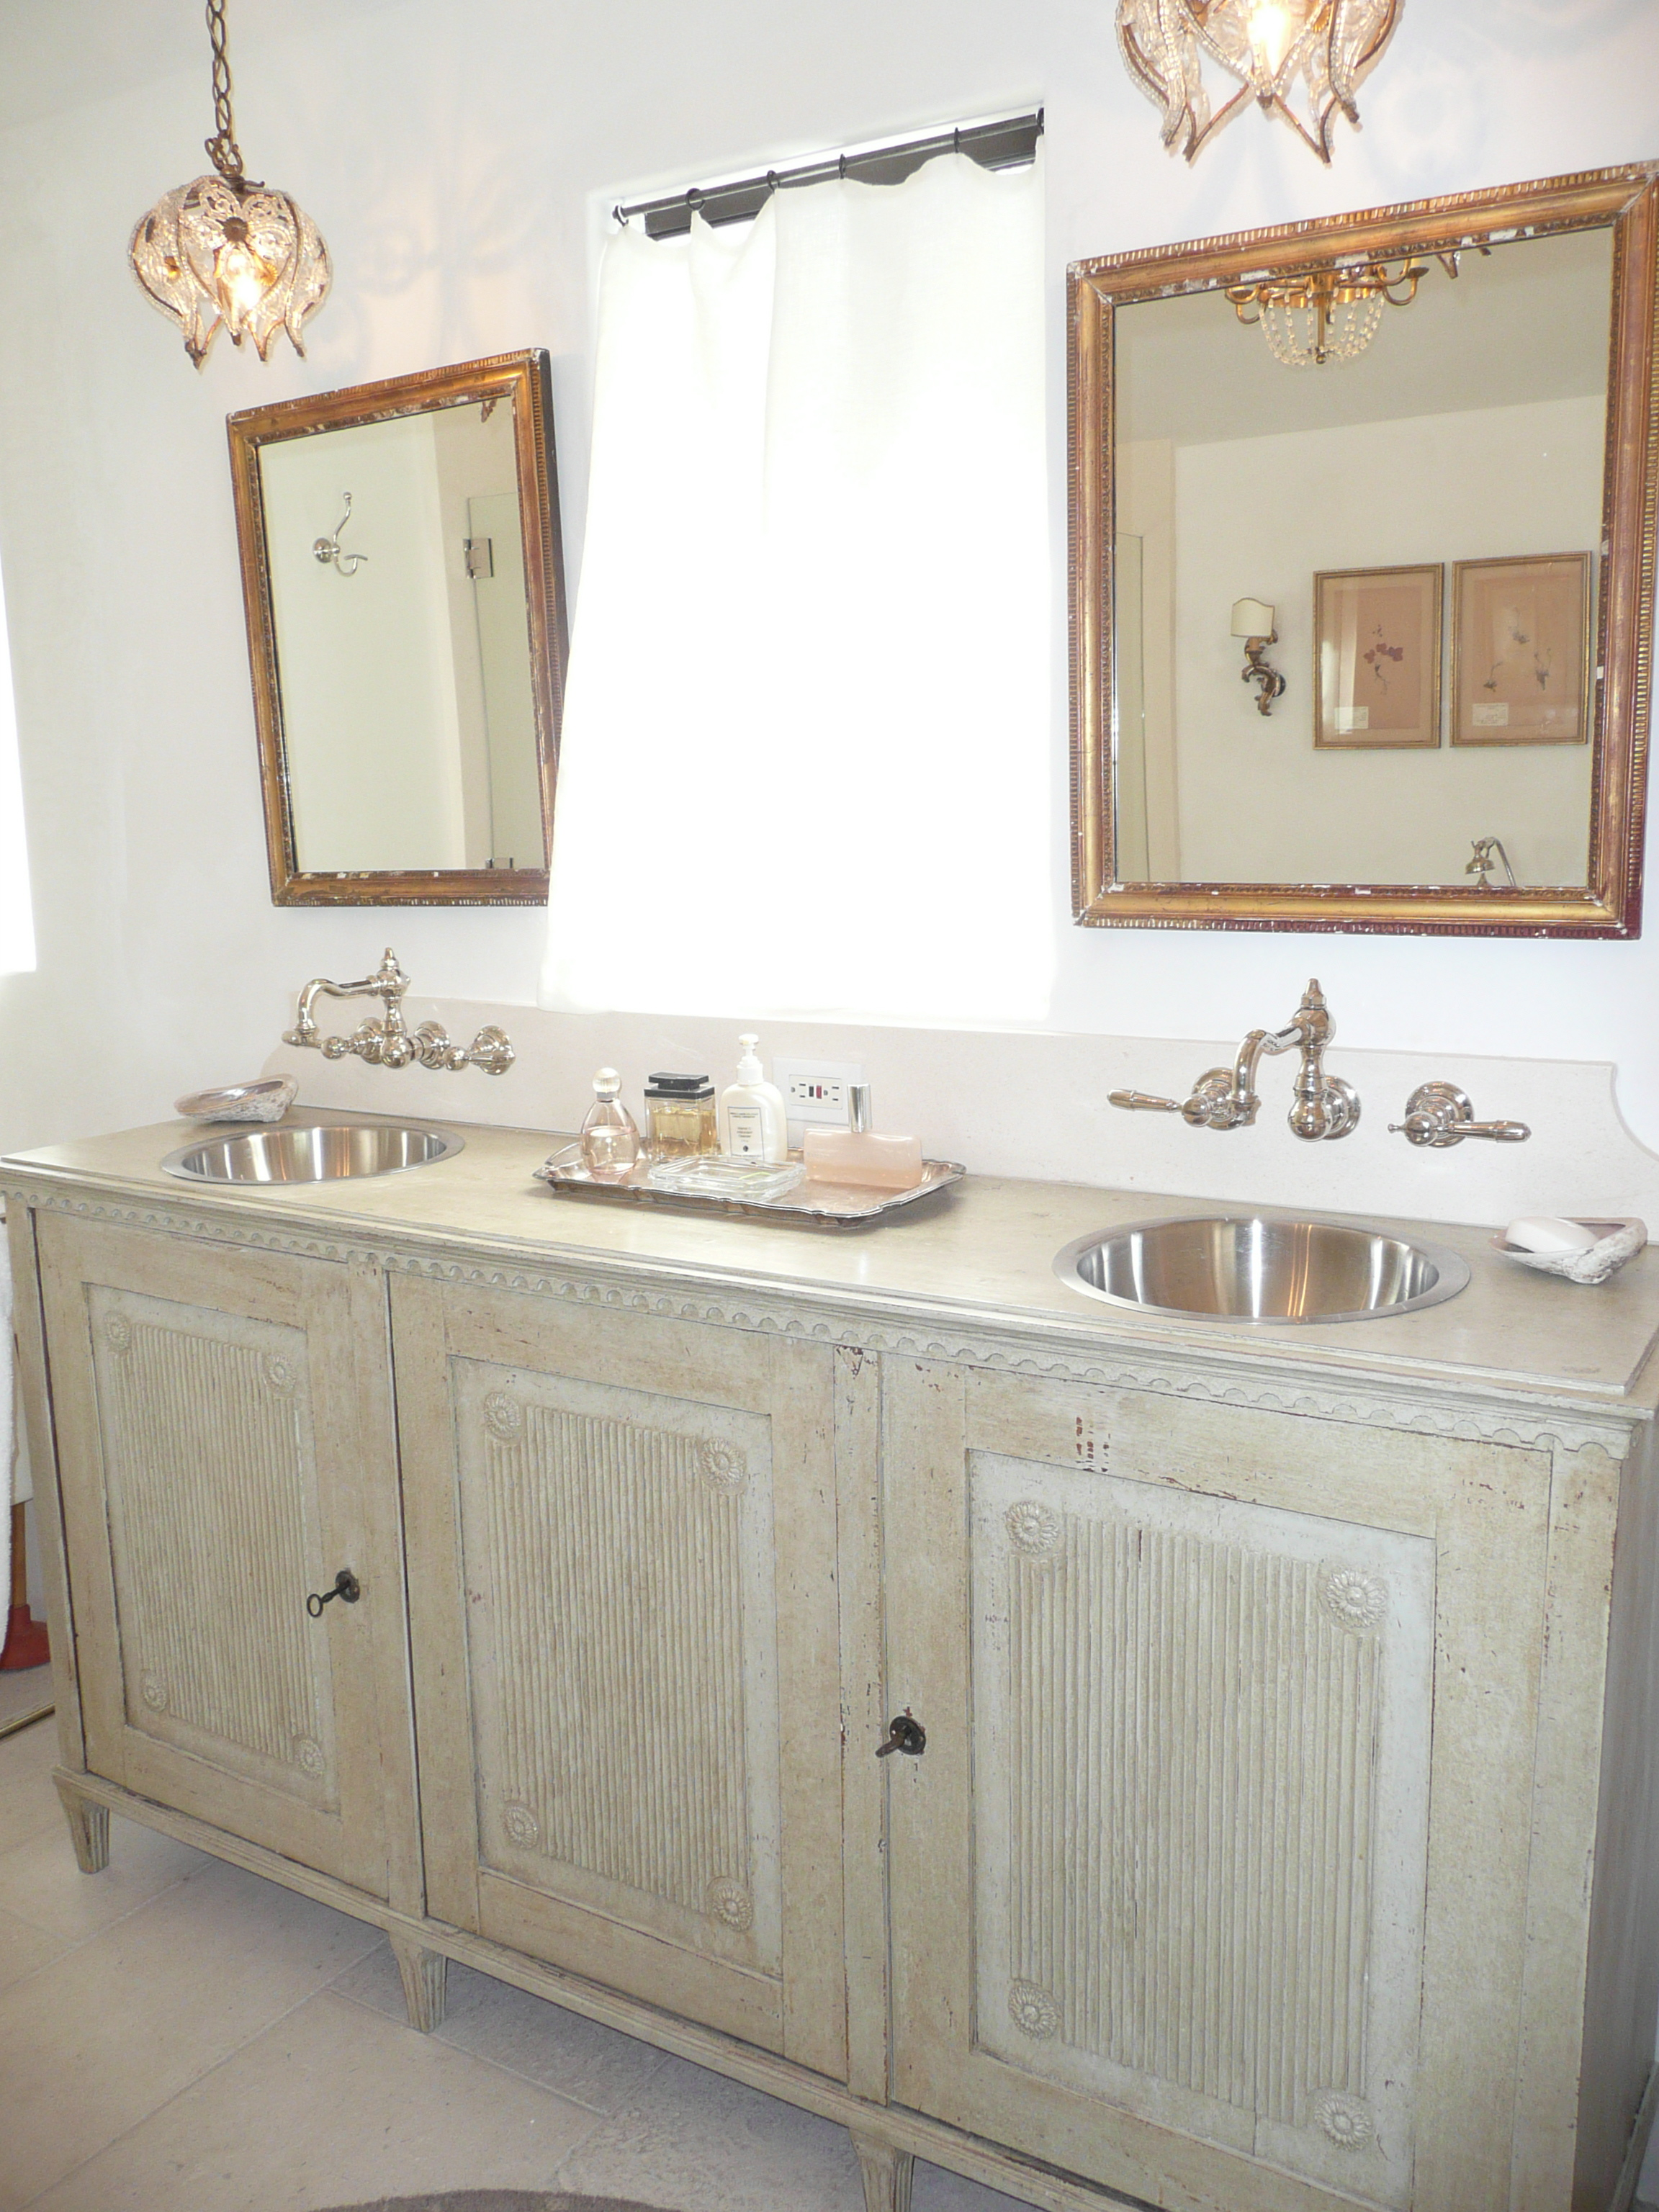 with remodel side faucet maine cream bridge deck rockport wilson barber mount spray co bridgemaster kitchen jersey faucets wilsons ice